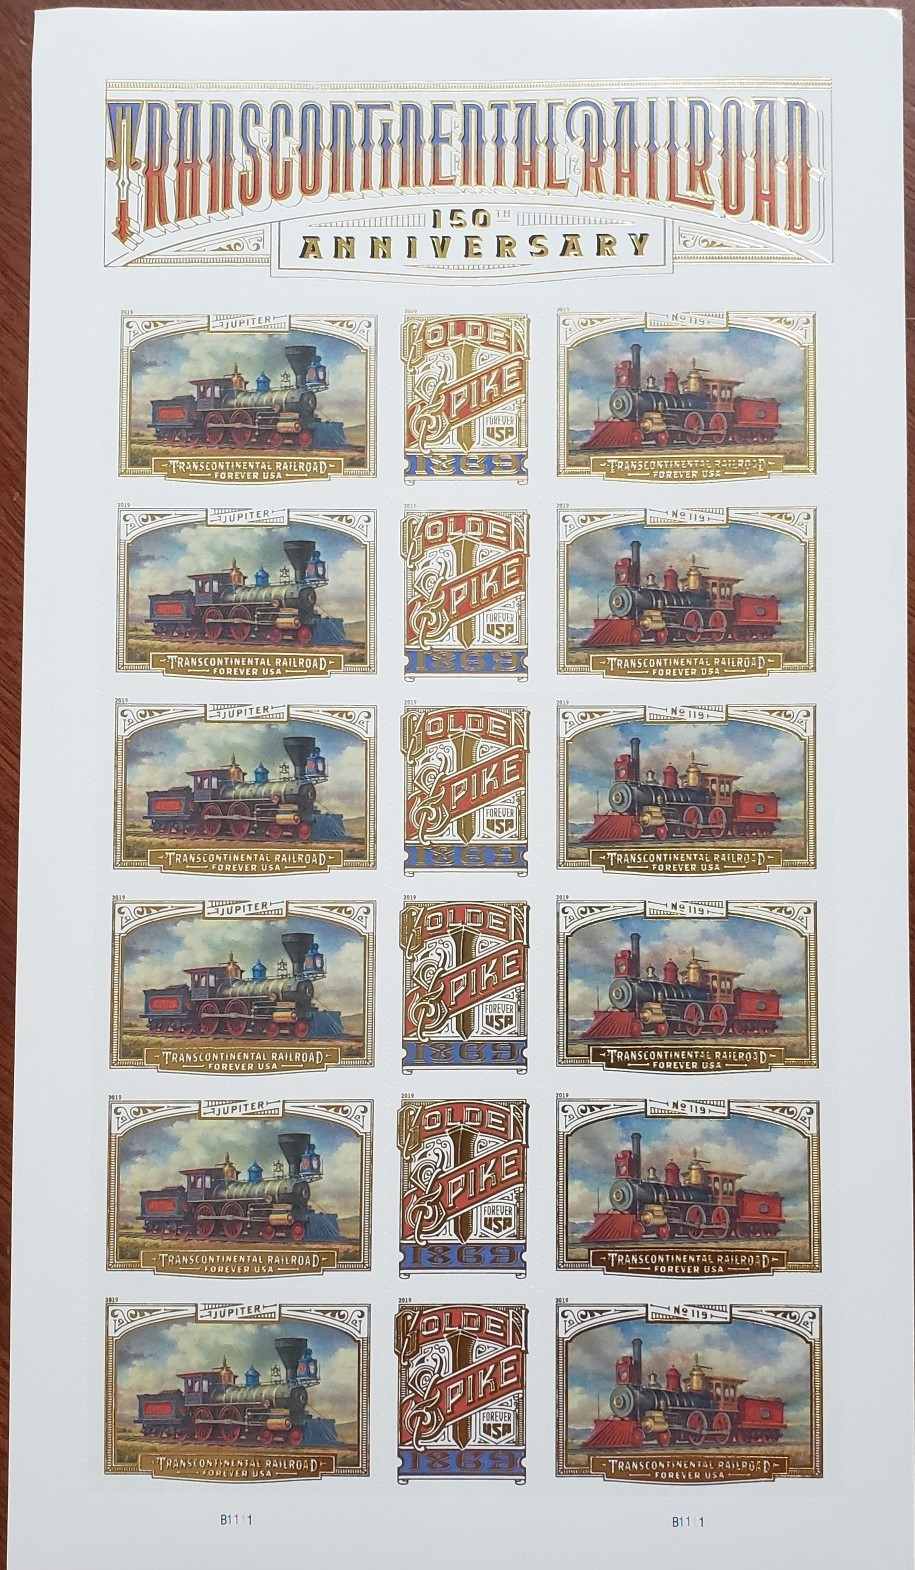 Primary image for Transcontinental Railroad 150 Anniversary 2019 USPS 18 Forever Stamps Sheet